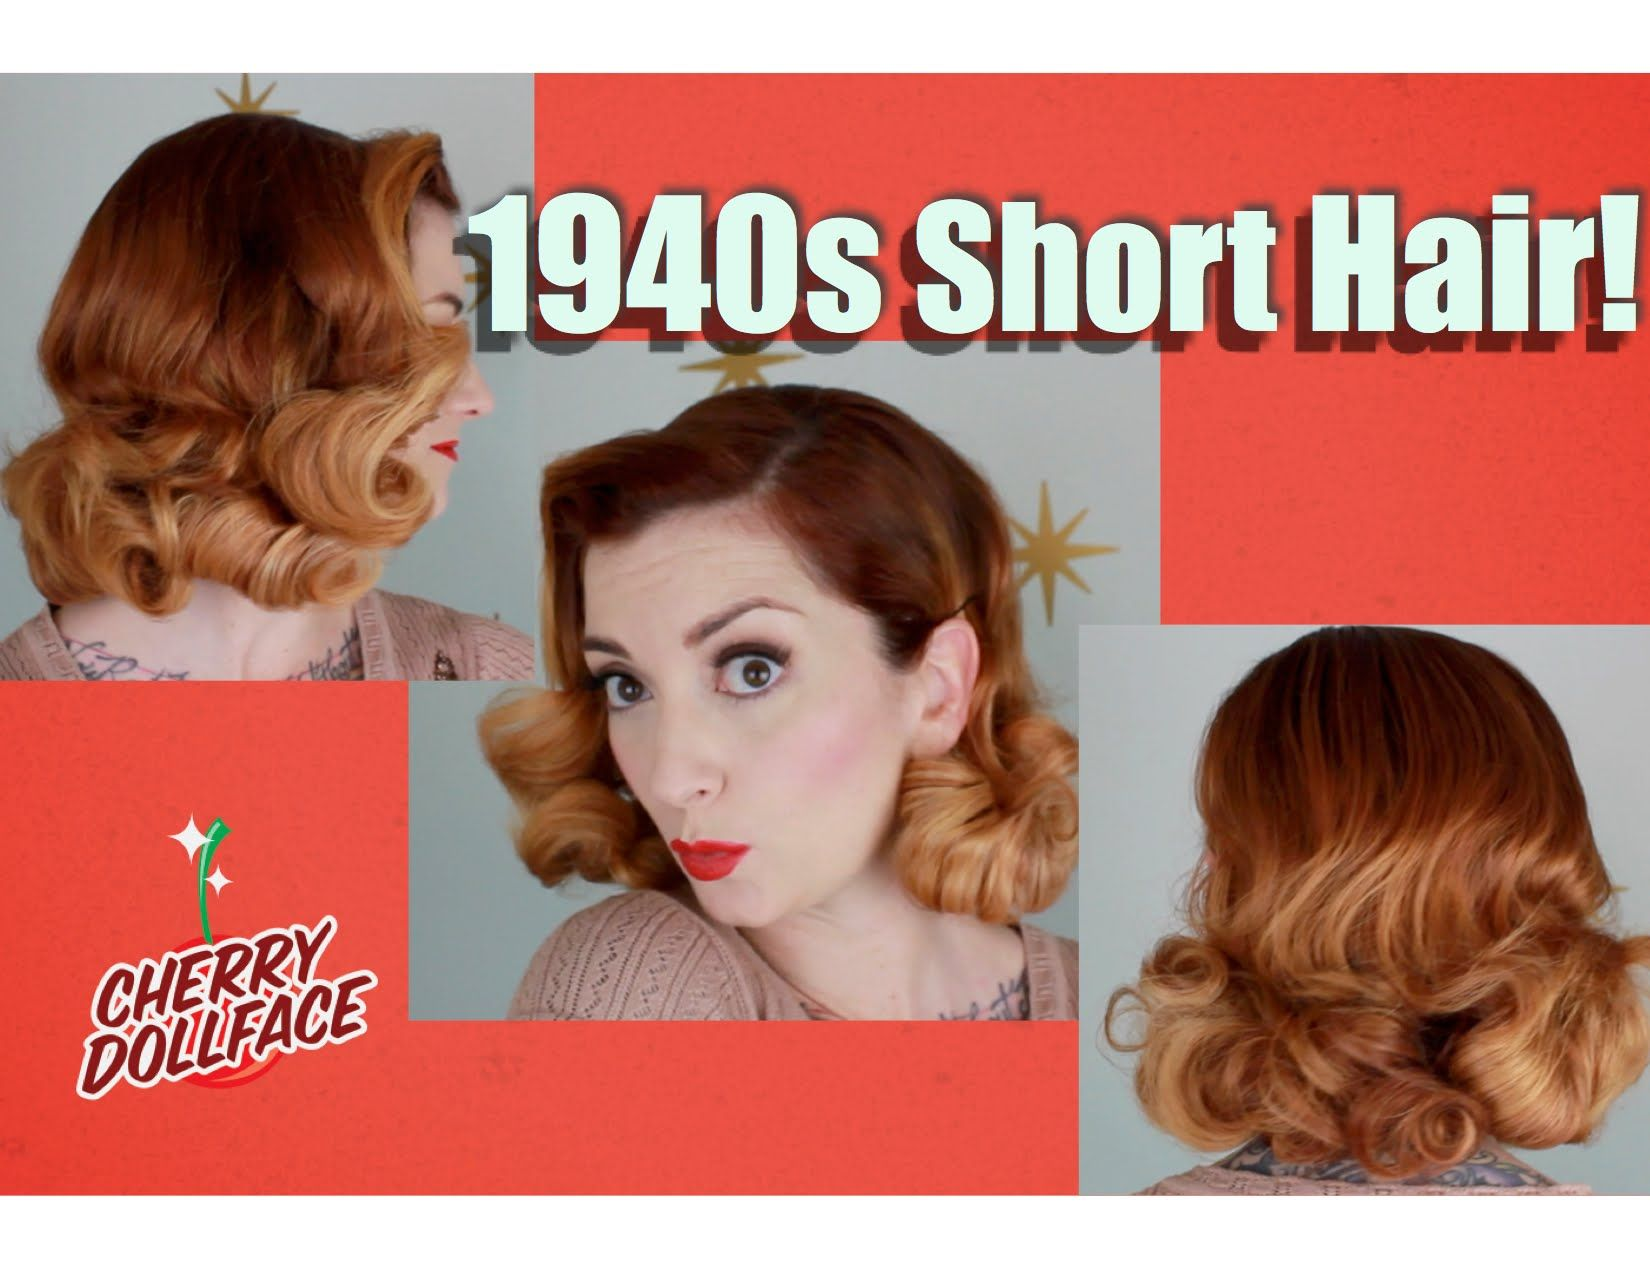 1940s Short Hair Vintage Pillow Roller Wet Set By Cherry Dollface 1940s Hairstyles Vintage Hairstyles Retro Hairstyles